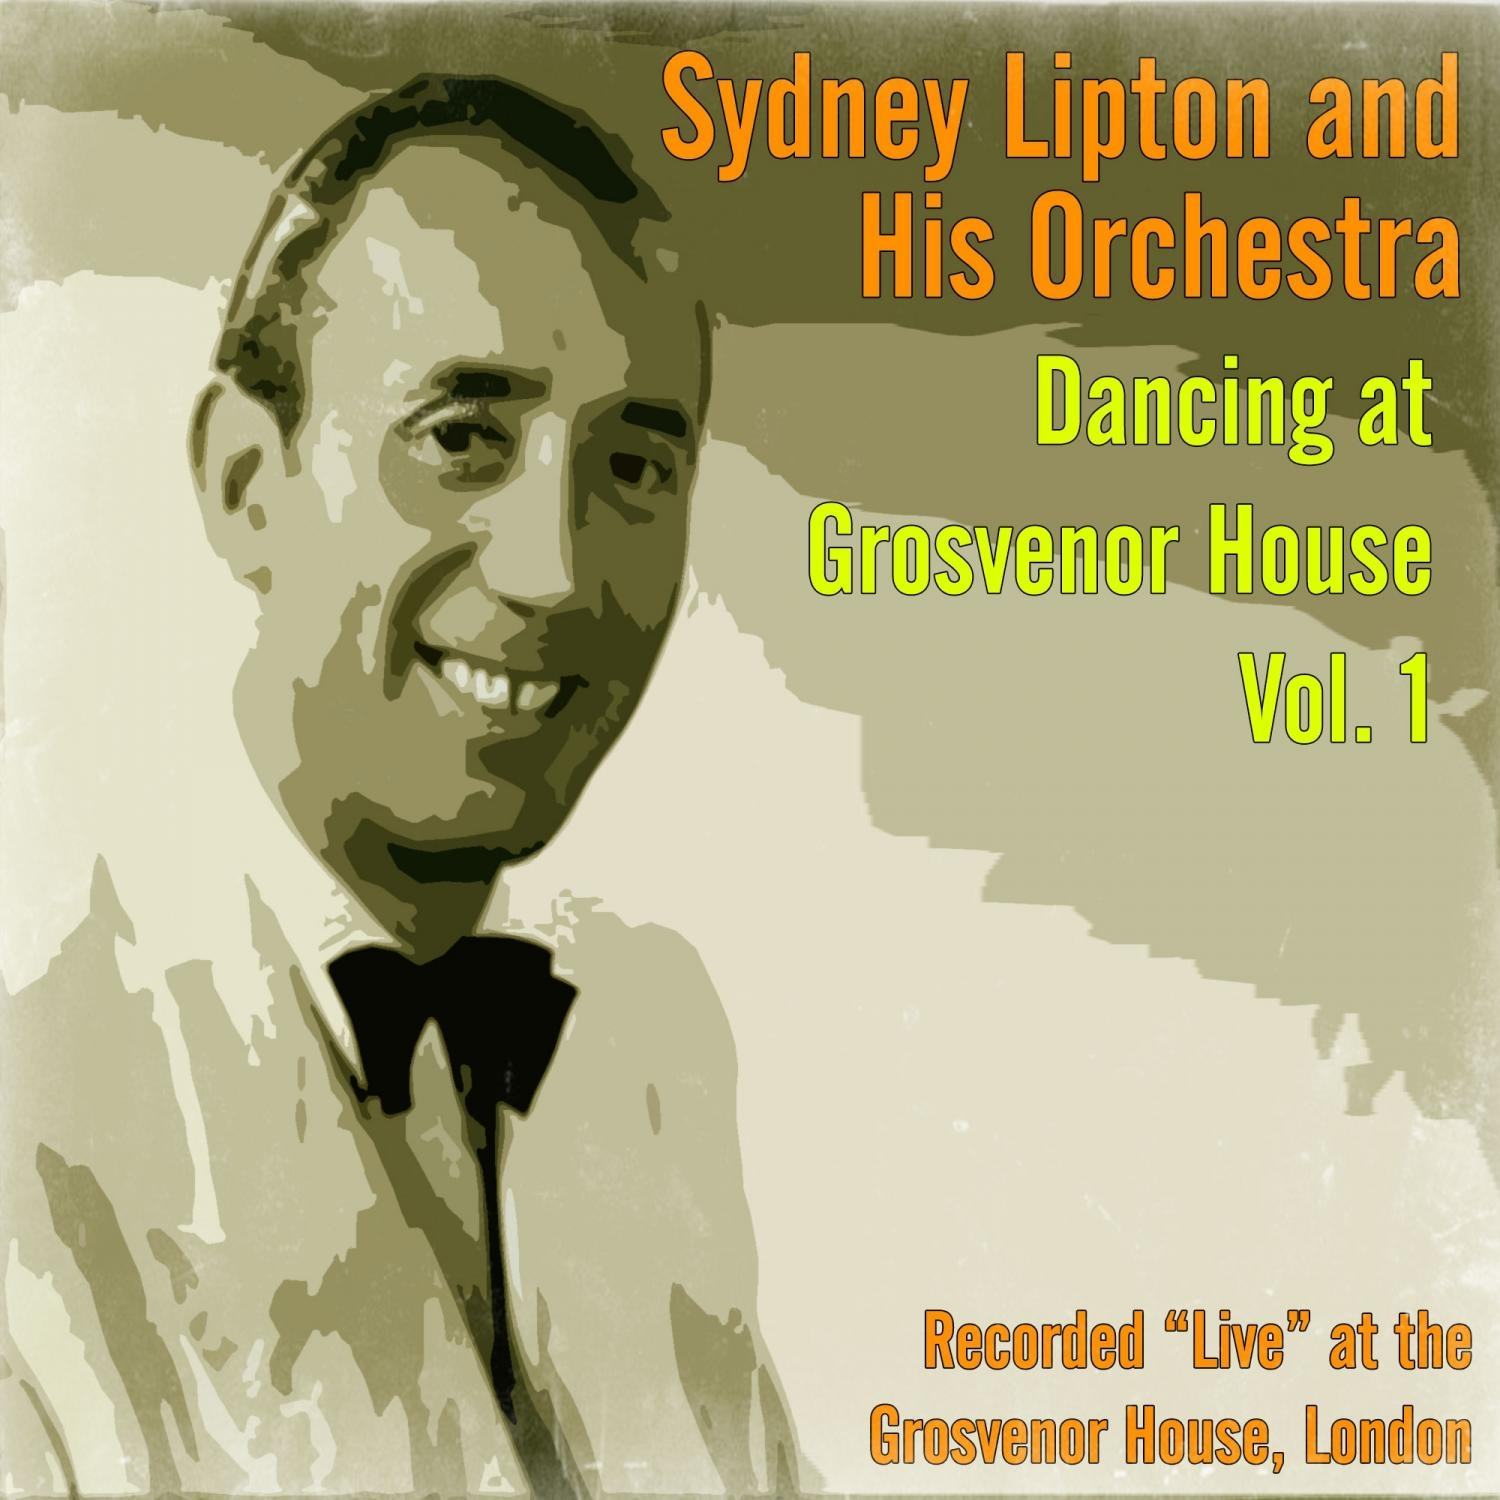 Syndey Lipton and his Orchestra - Among My Souvenirs  (Original Mix)